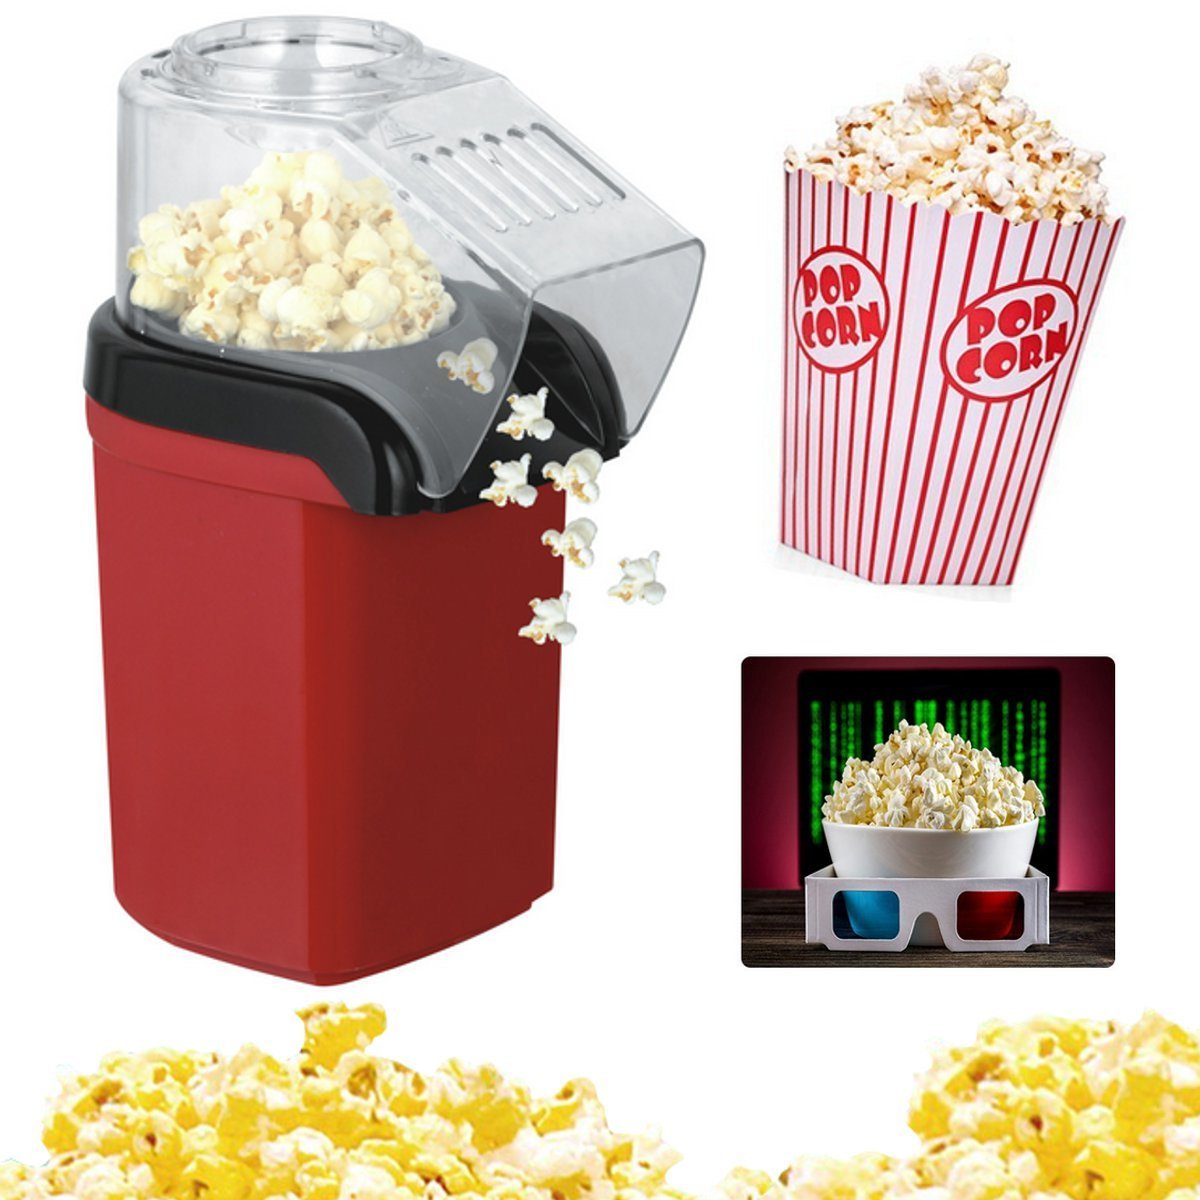 Electric Corn Popcorn Maker Diy Household Automatic Mini Hot Air Popcorn Making Kitchen Machine Diy Corn Popper 110v 220v